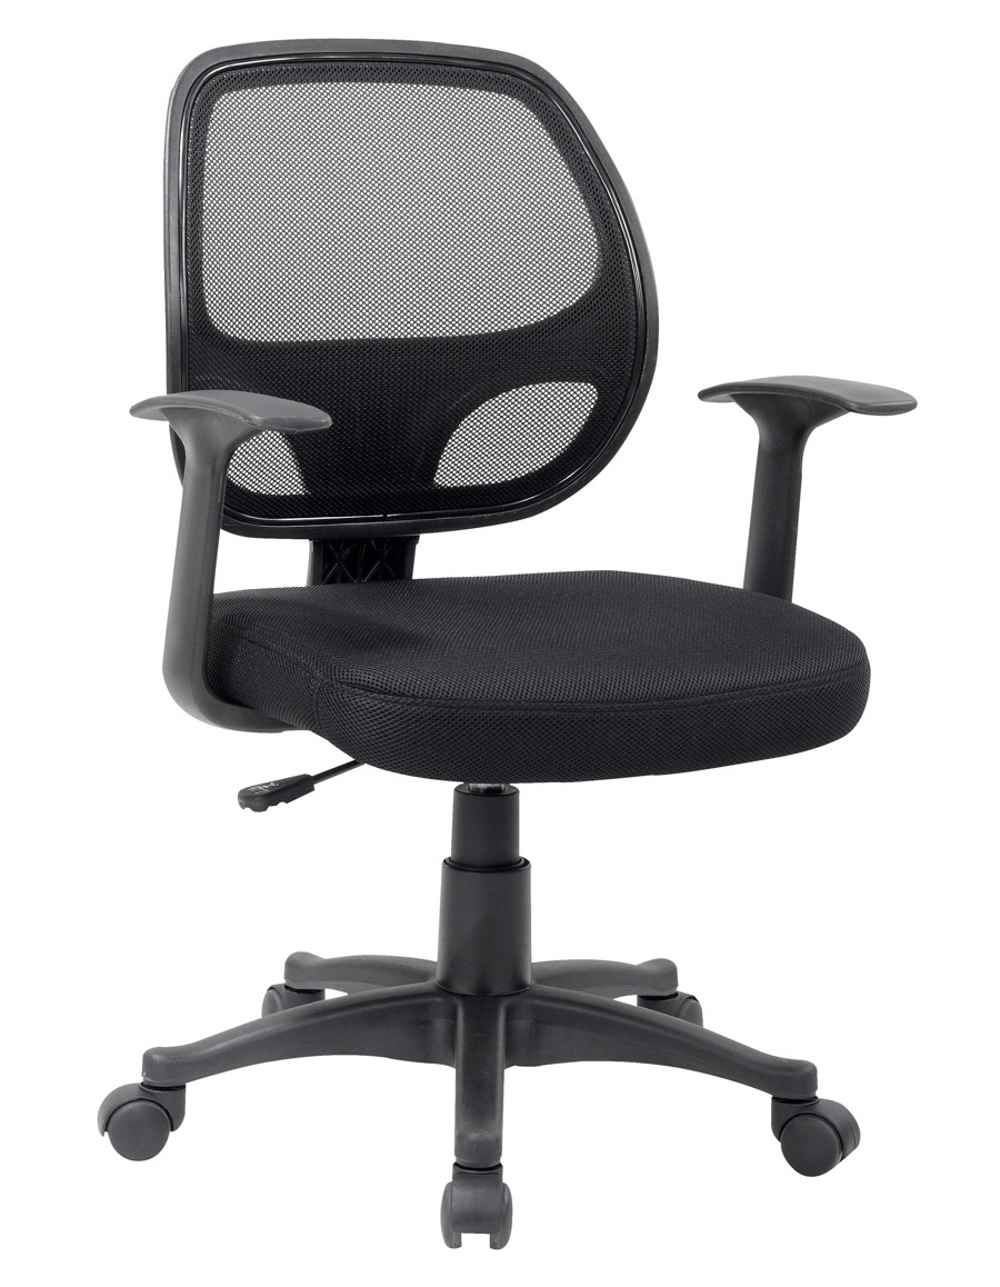 Ergonomic Black Mesh Computer Chair With Arms Office Chair Chair Mesh Chair